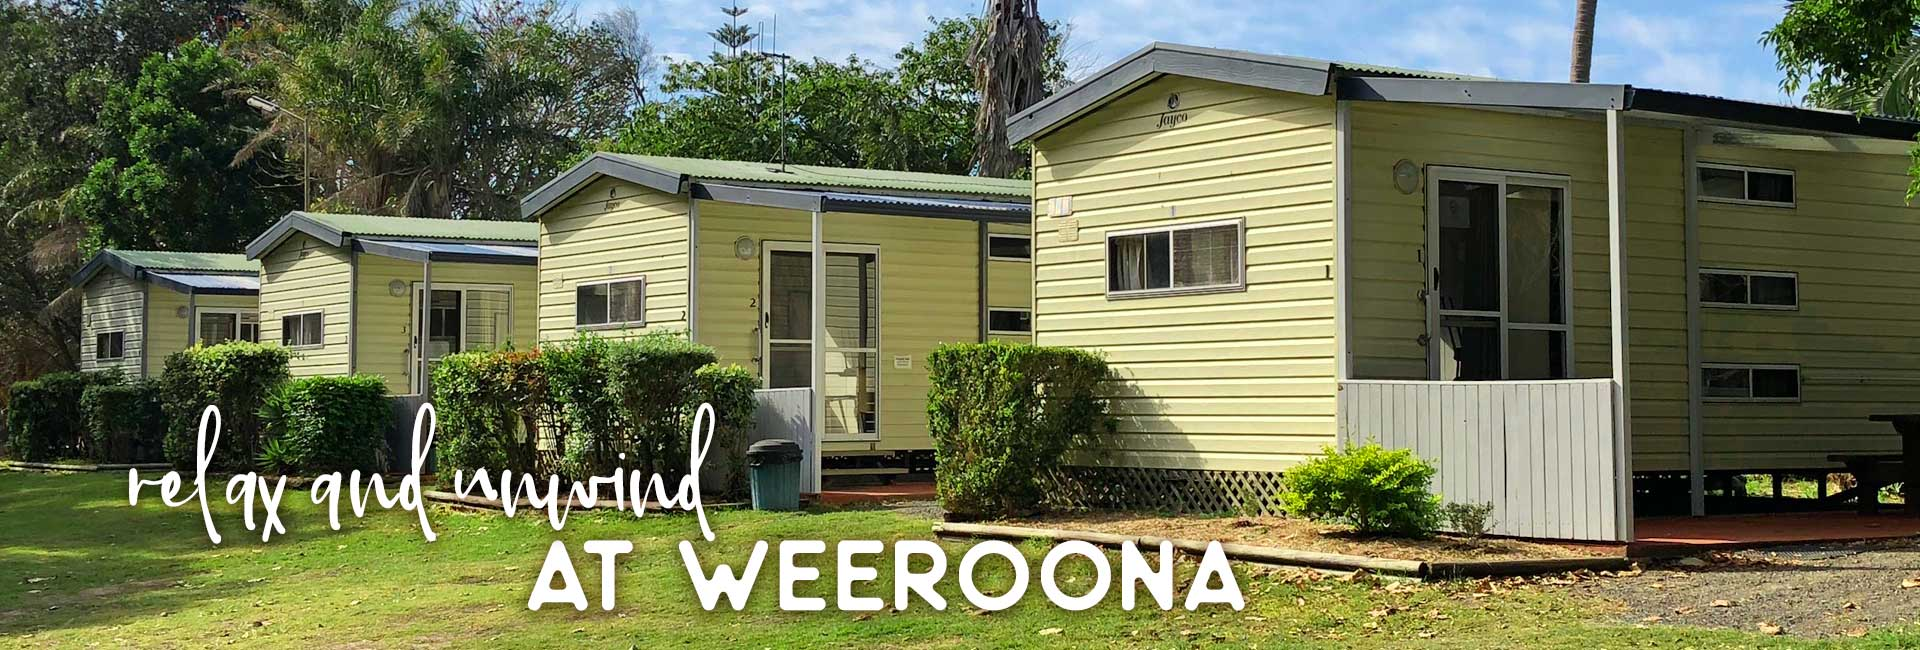 Cabins at weeroona